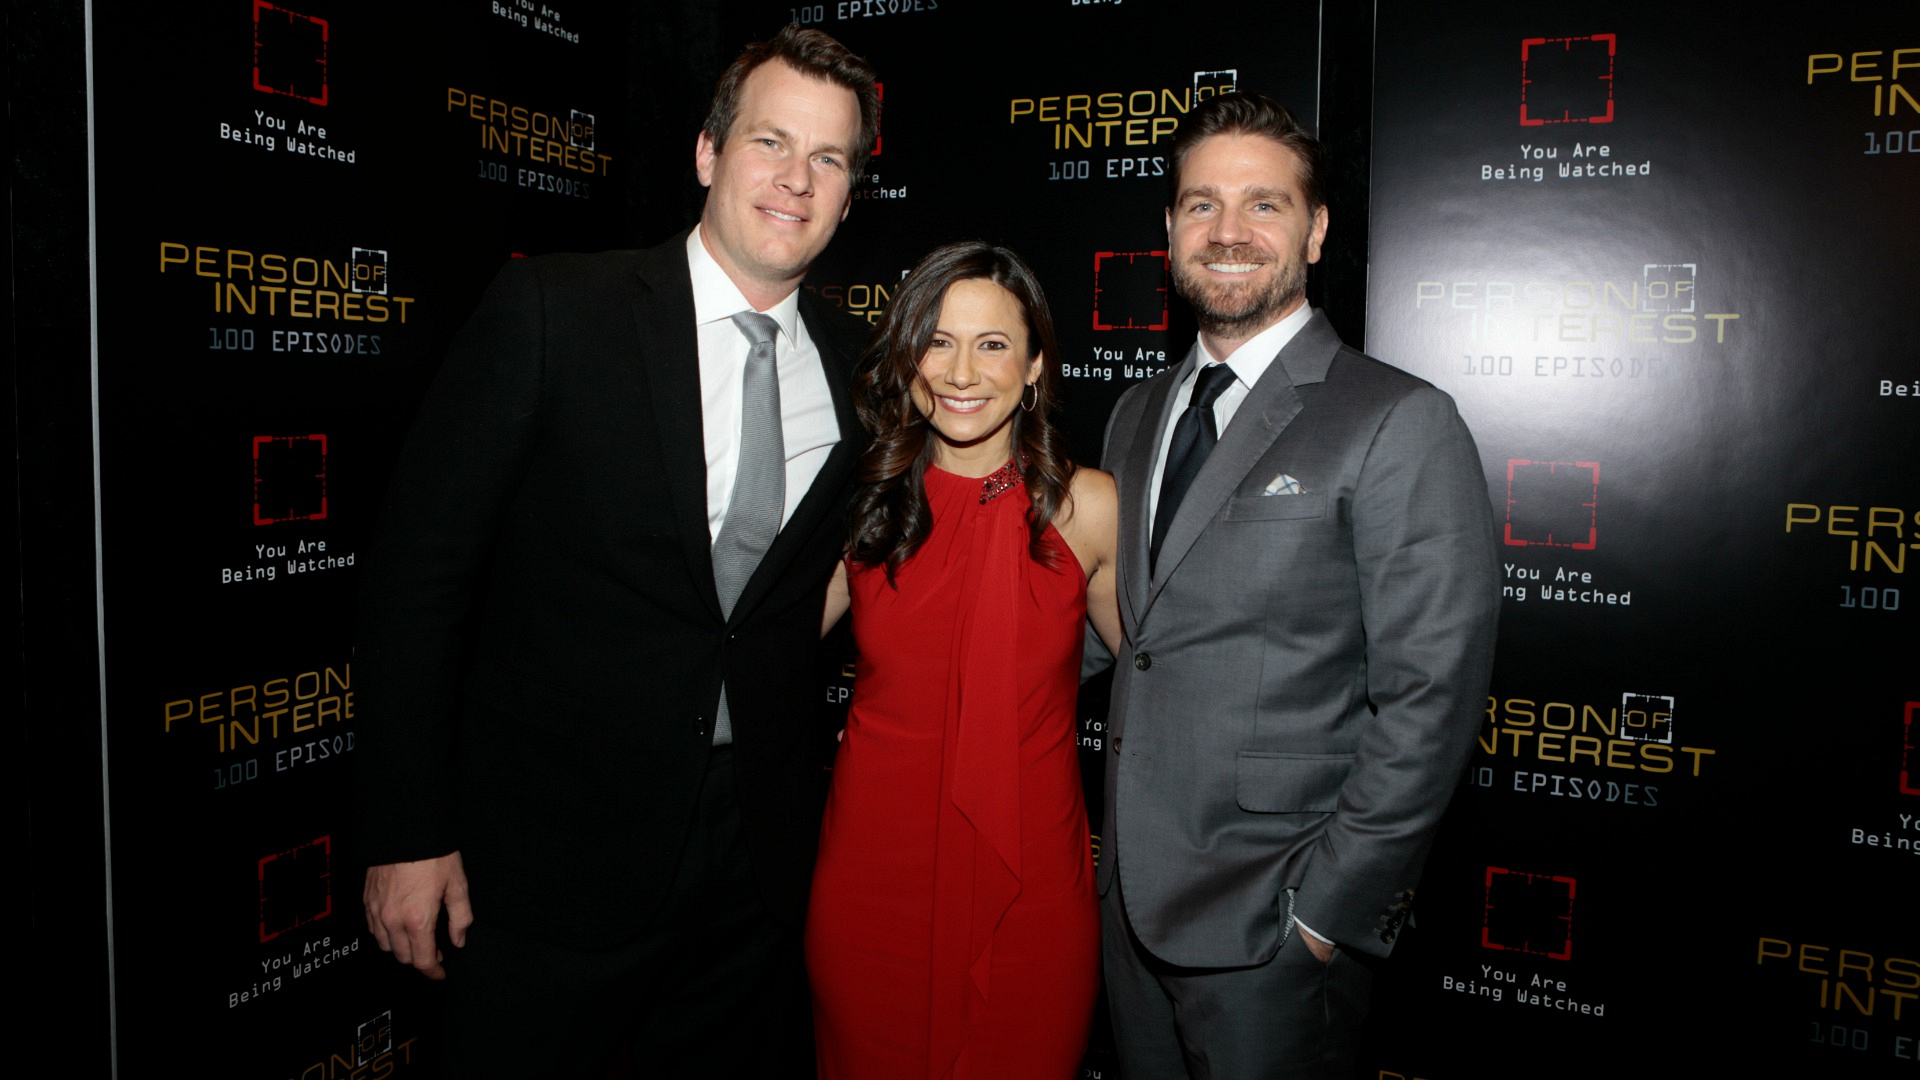 Series creator Jonathan Nolan and Executive Producers Denise Thé and Greg Plageman looked dashing.